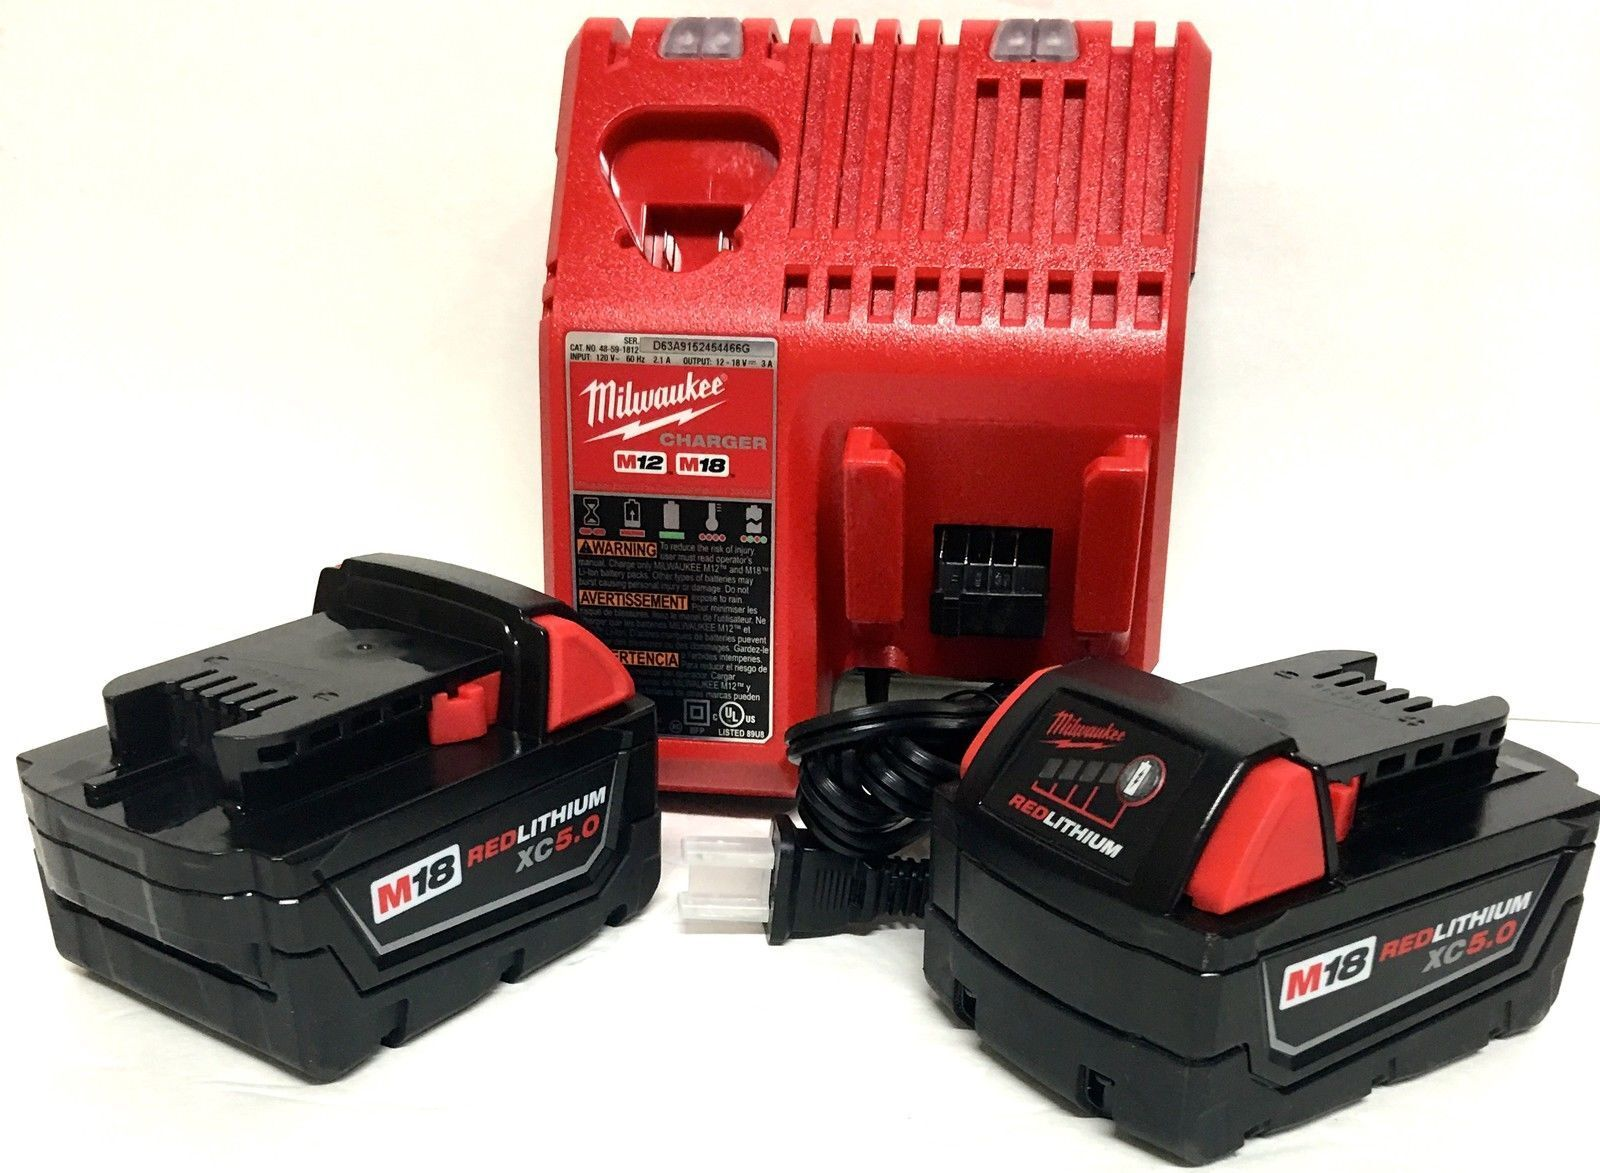 2 New Milwaukee M18 XC 5.0 Ah Batteries 48-11-1850 & 1 Charger 48-59-1812